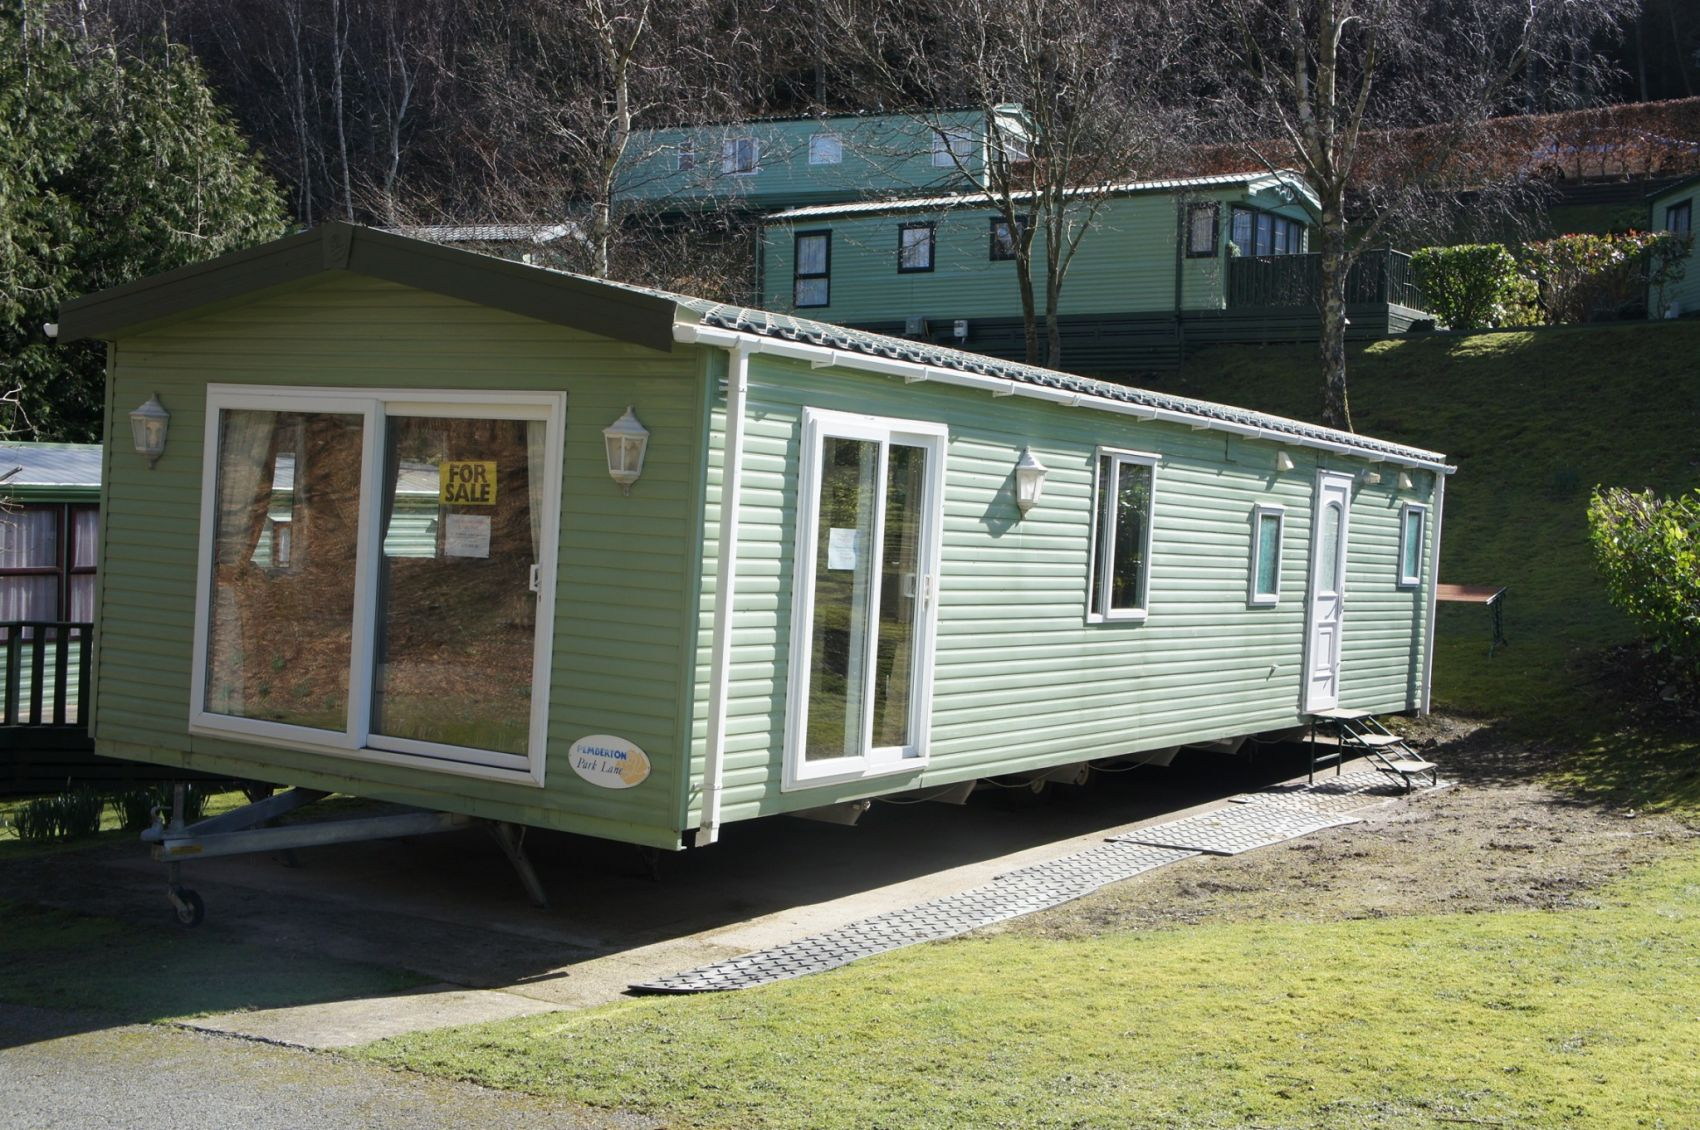 Holiday homes lodges for sale in bala snowdonia north for Pemberton cabins